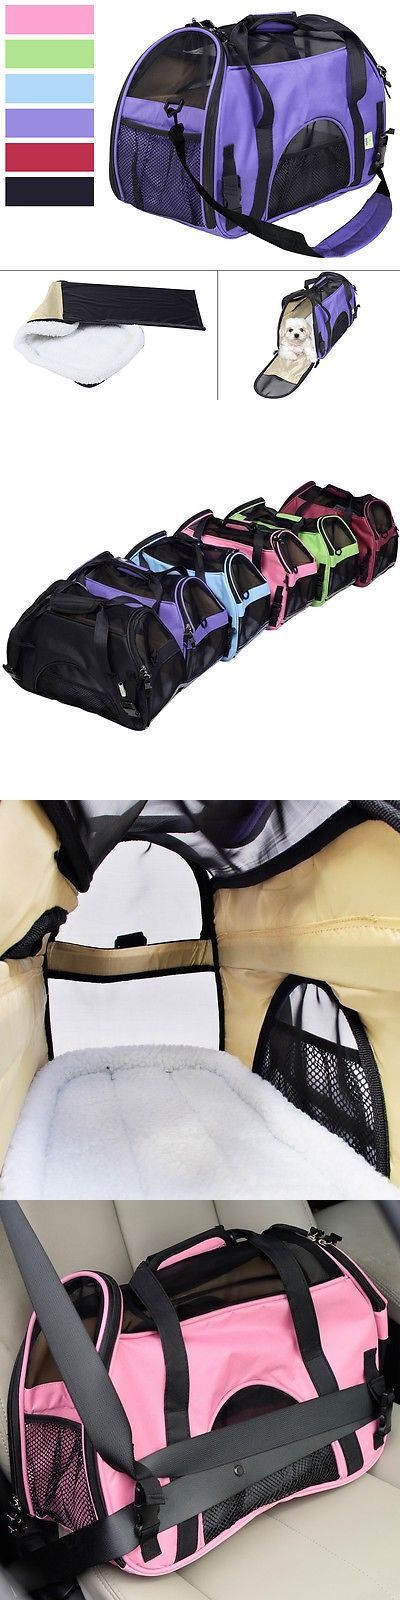 Small Pet Carrier OxFord Soft Sided Cat/Dog Com... - Exclusively on #priceabate #priceabateAnimalsDog! BUY IT NOW ONLY $14.99